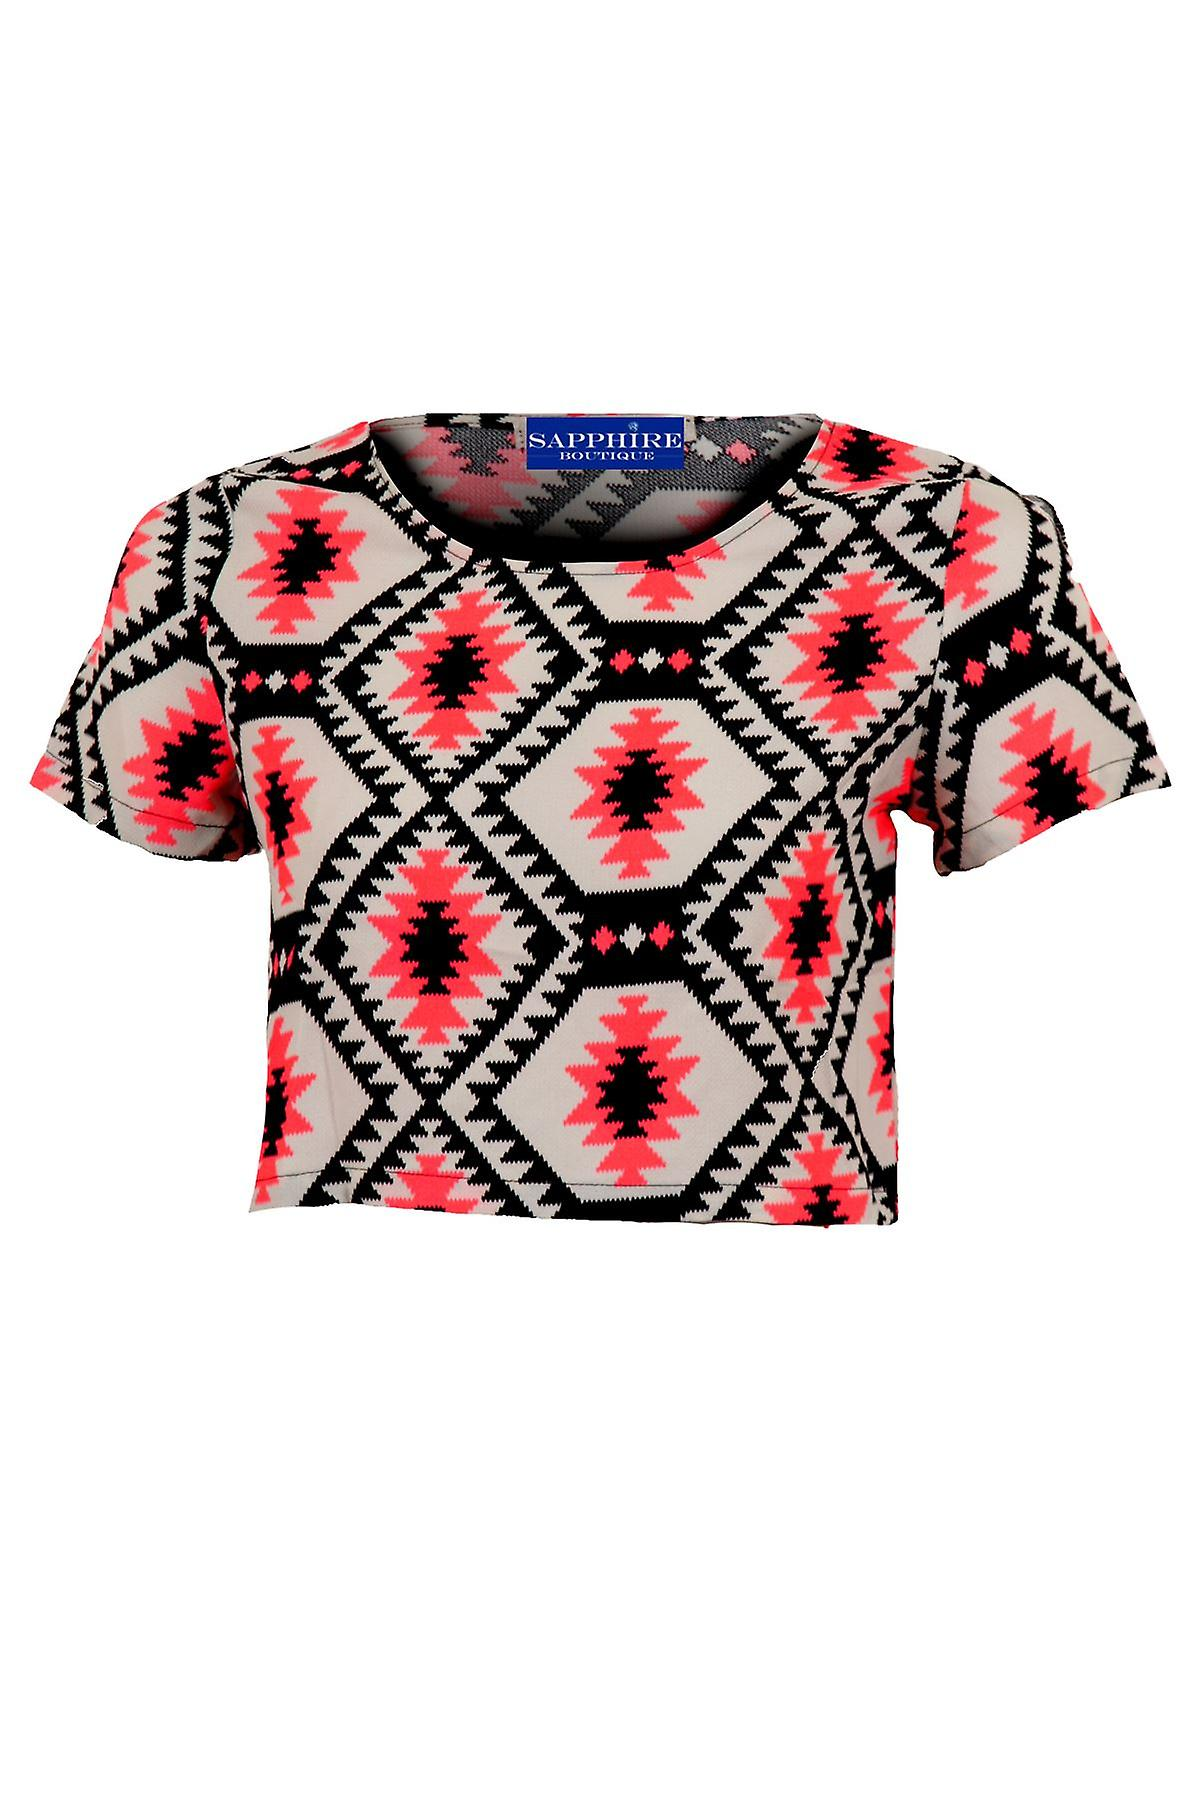 Ladies Short Sleeve Luminous Pink Black Chiffon Baggy Women's Crop Top